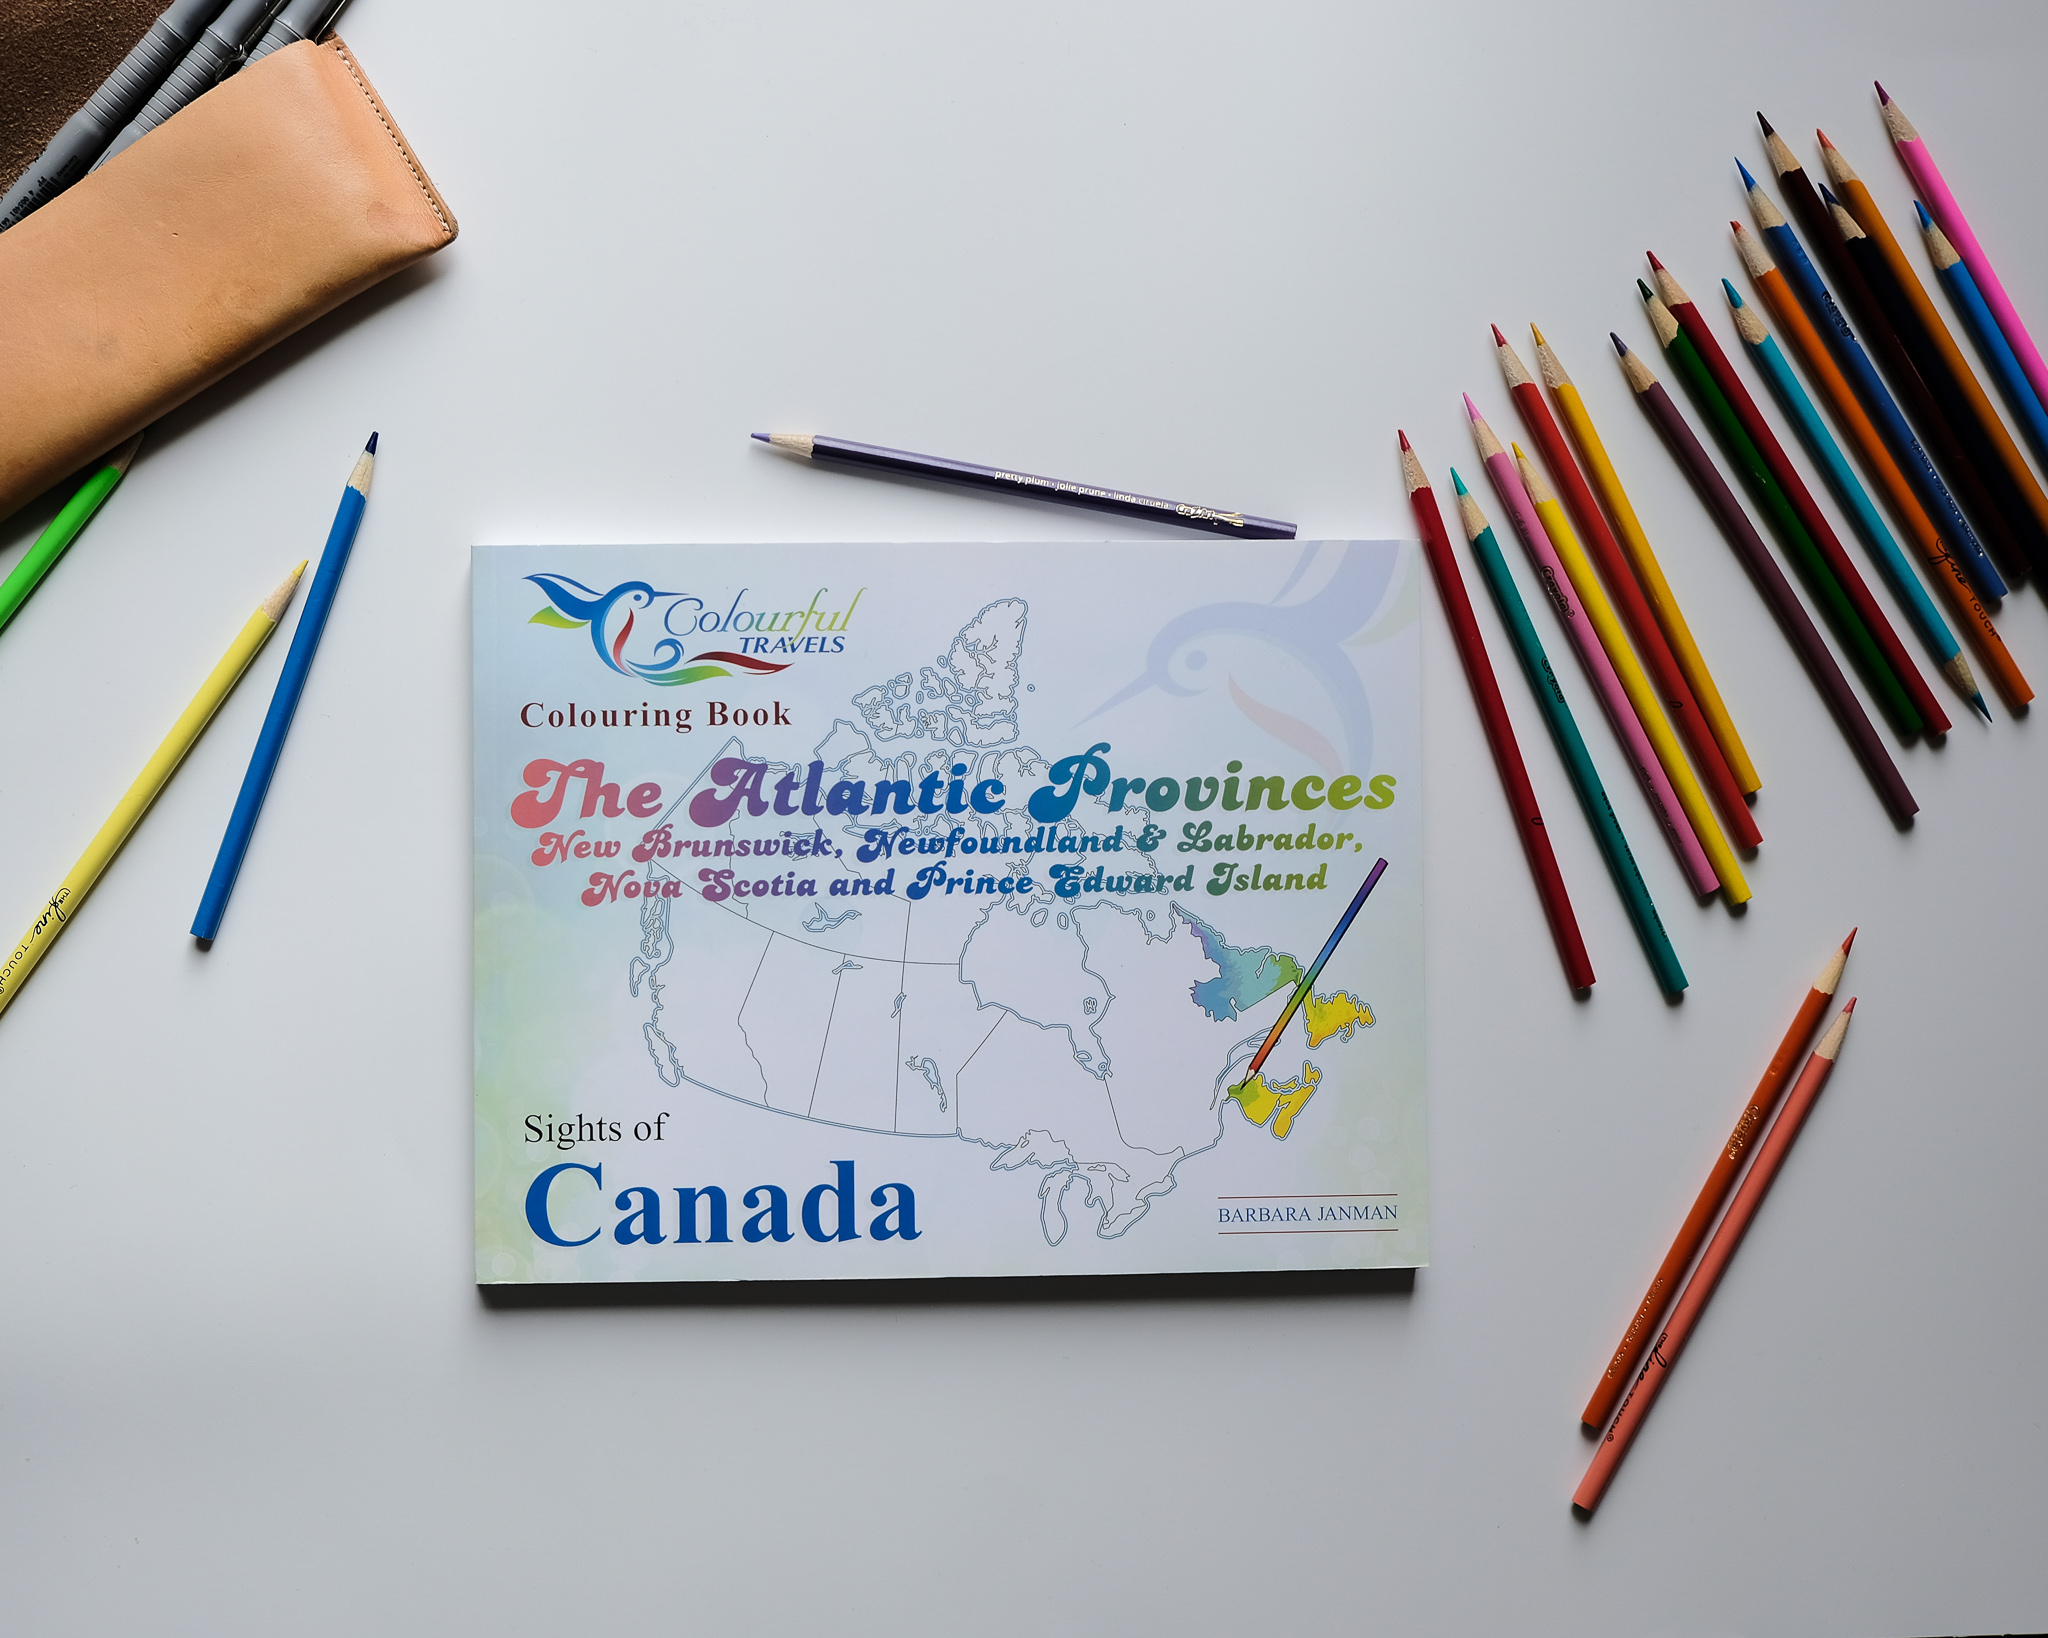 The Atlantic Provinces - Sights of Canada